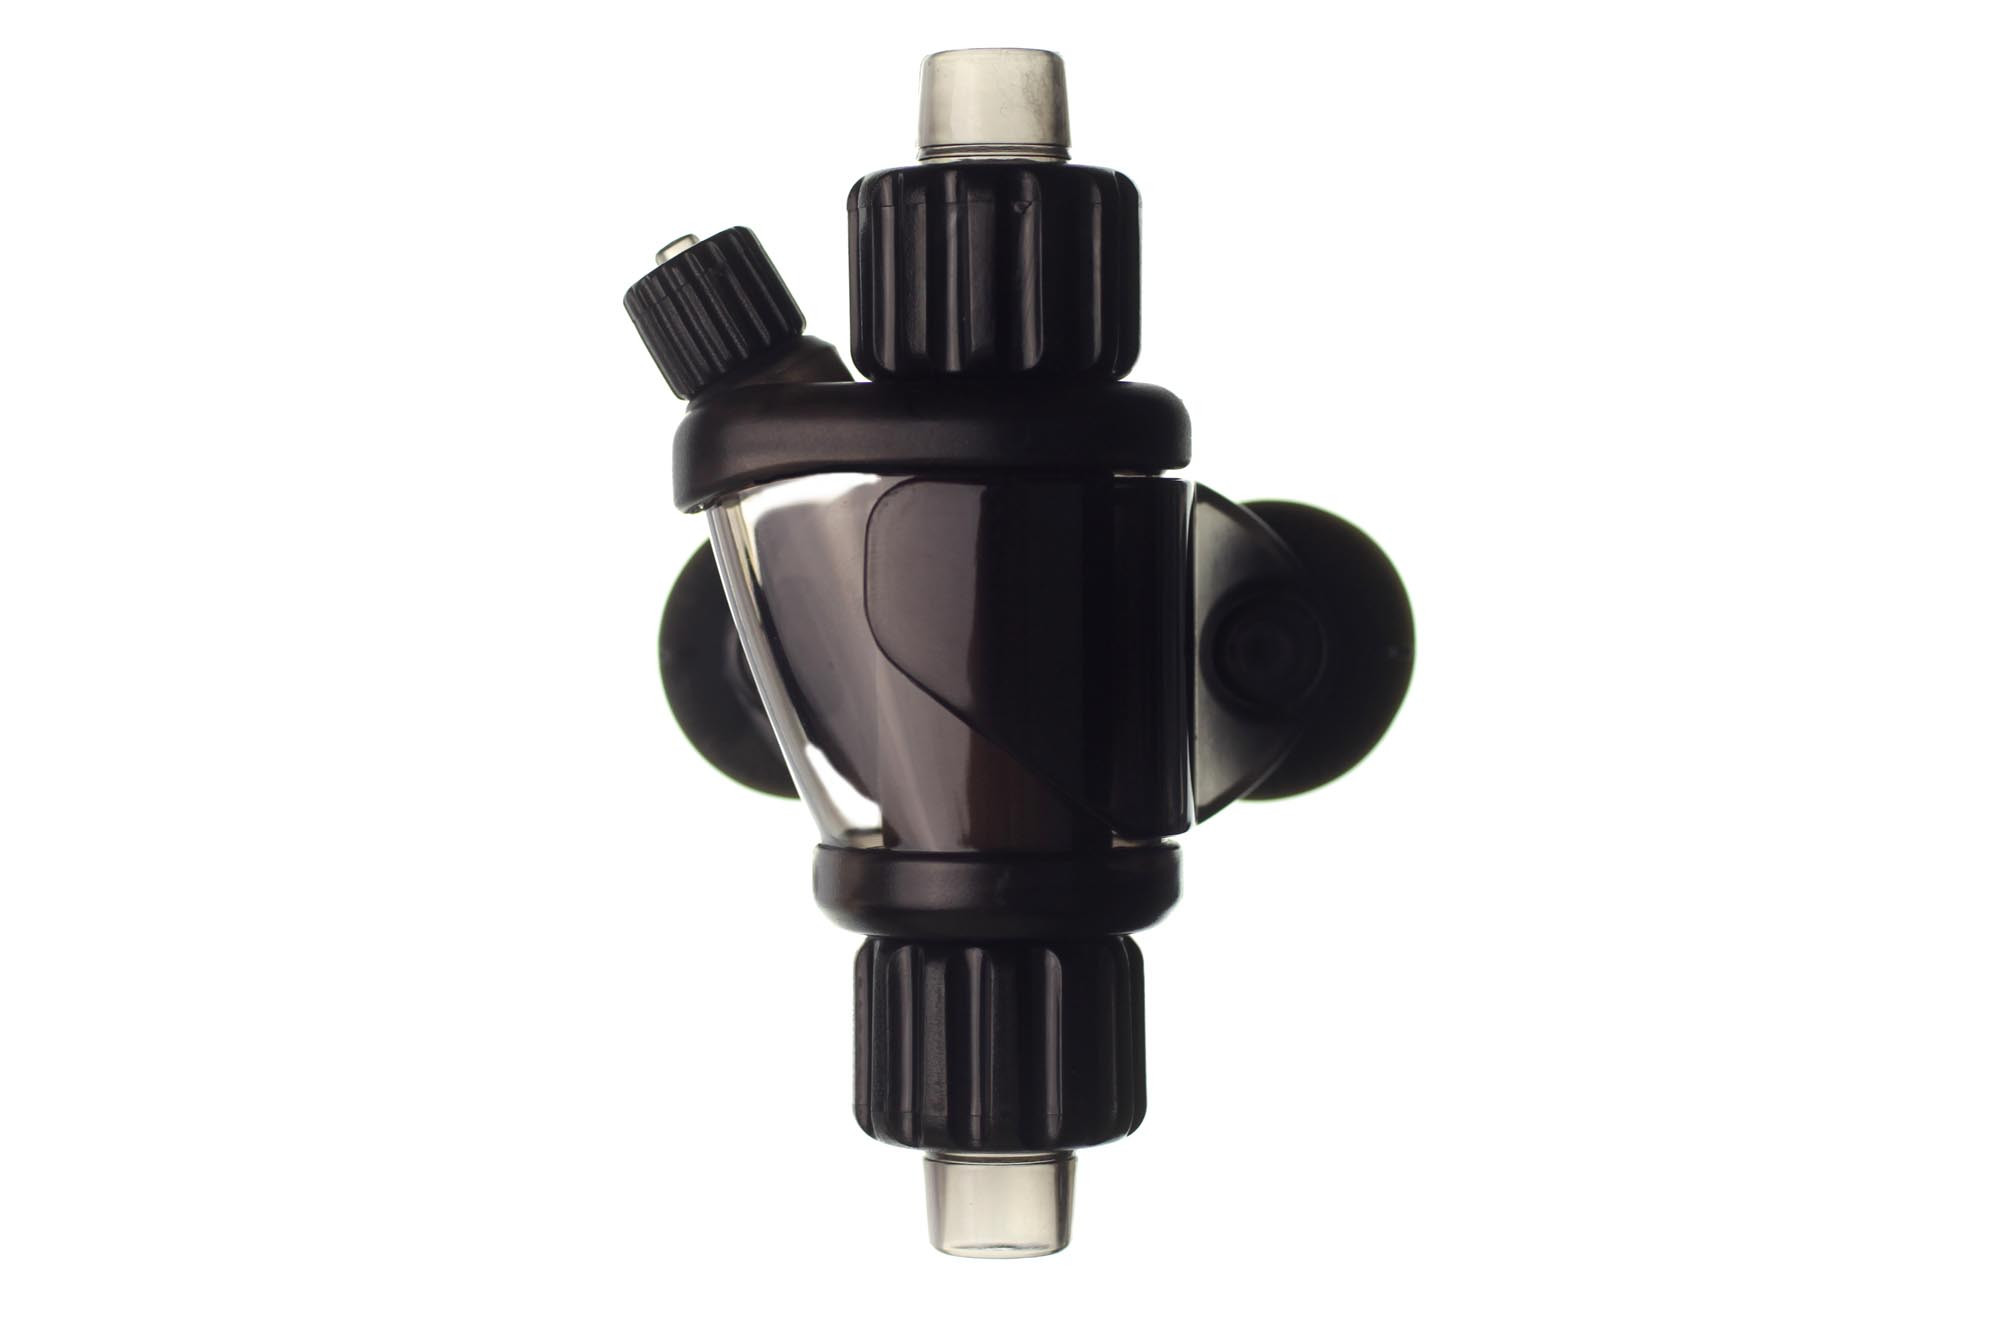 Photo of 12/16mm Intense Inline Atomizer Diffuser for planted aquariums